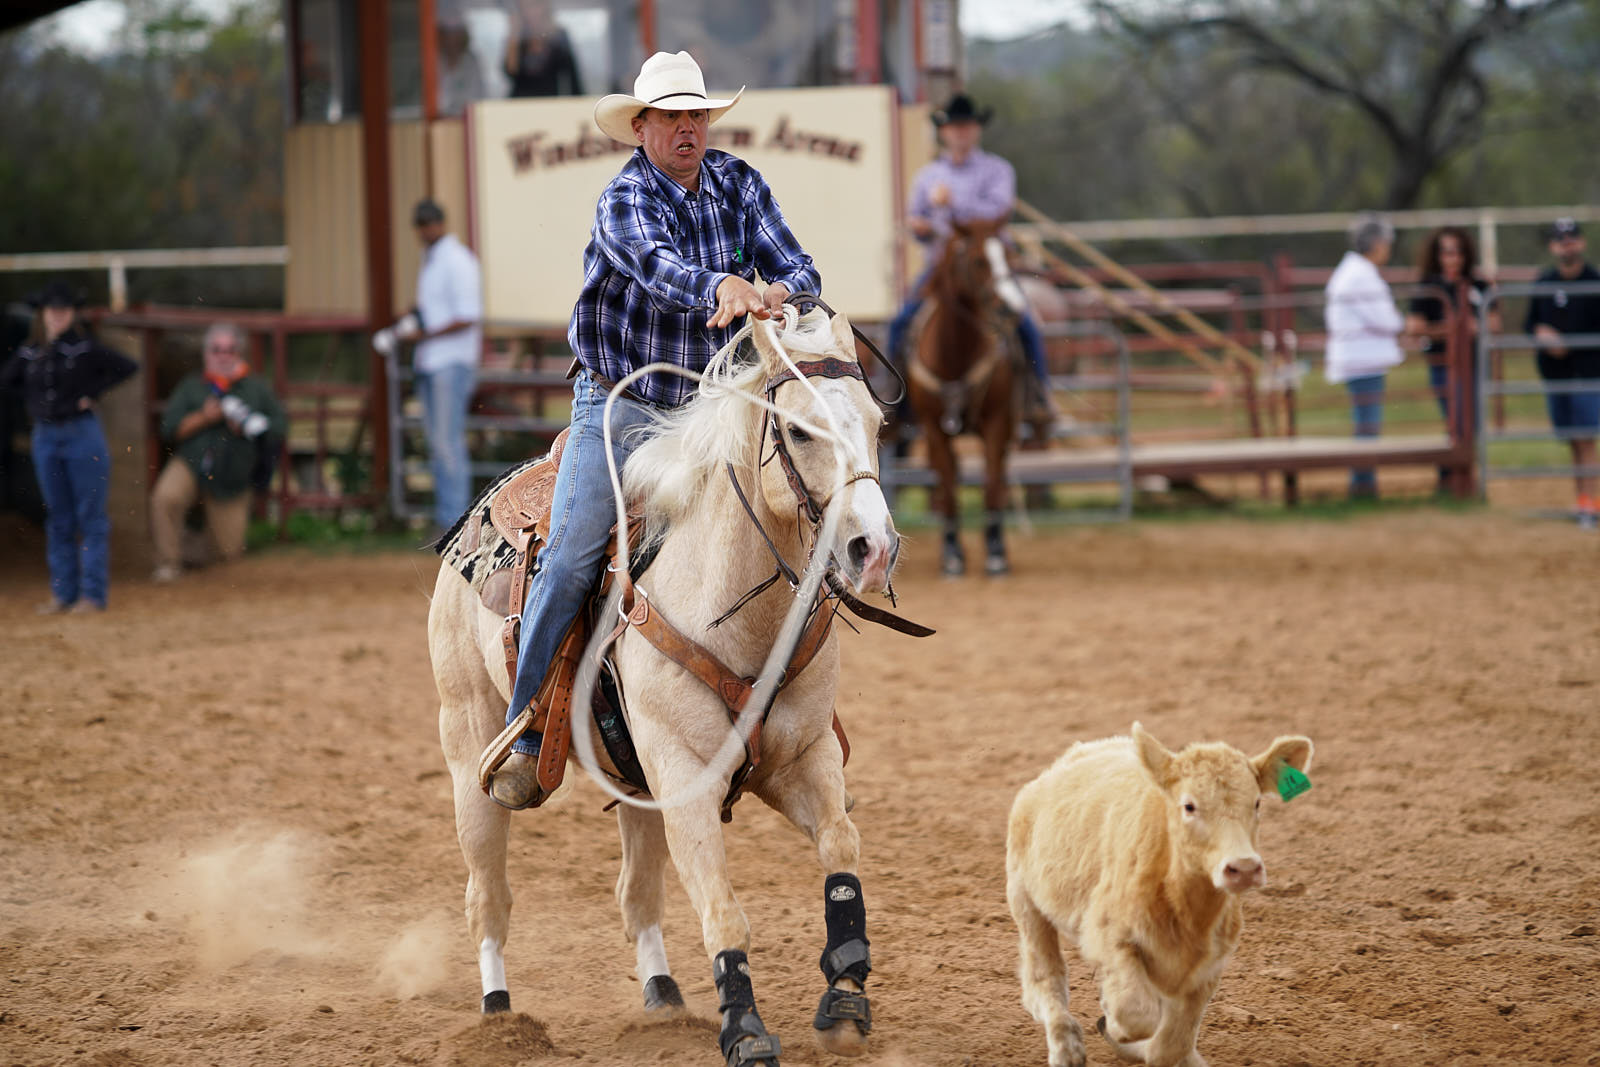 Sony a99 II review - Rodeo, steer roping